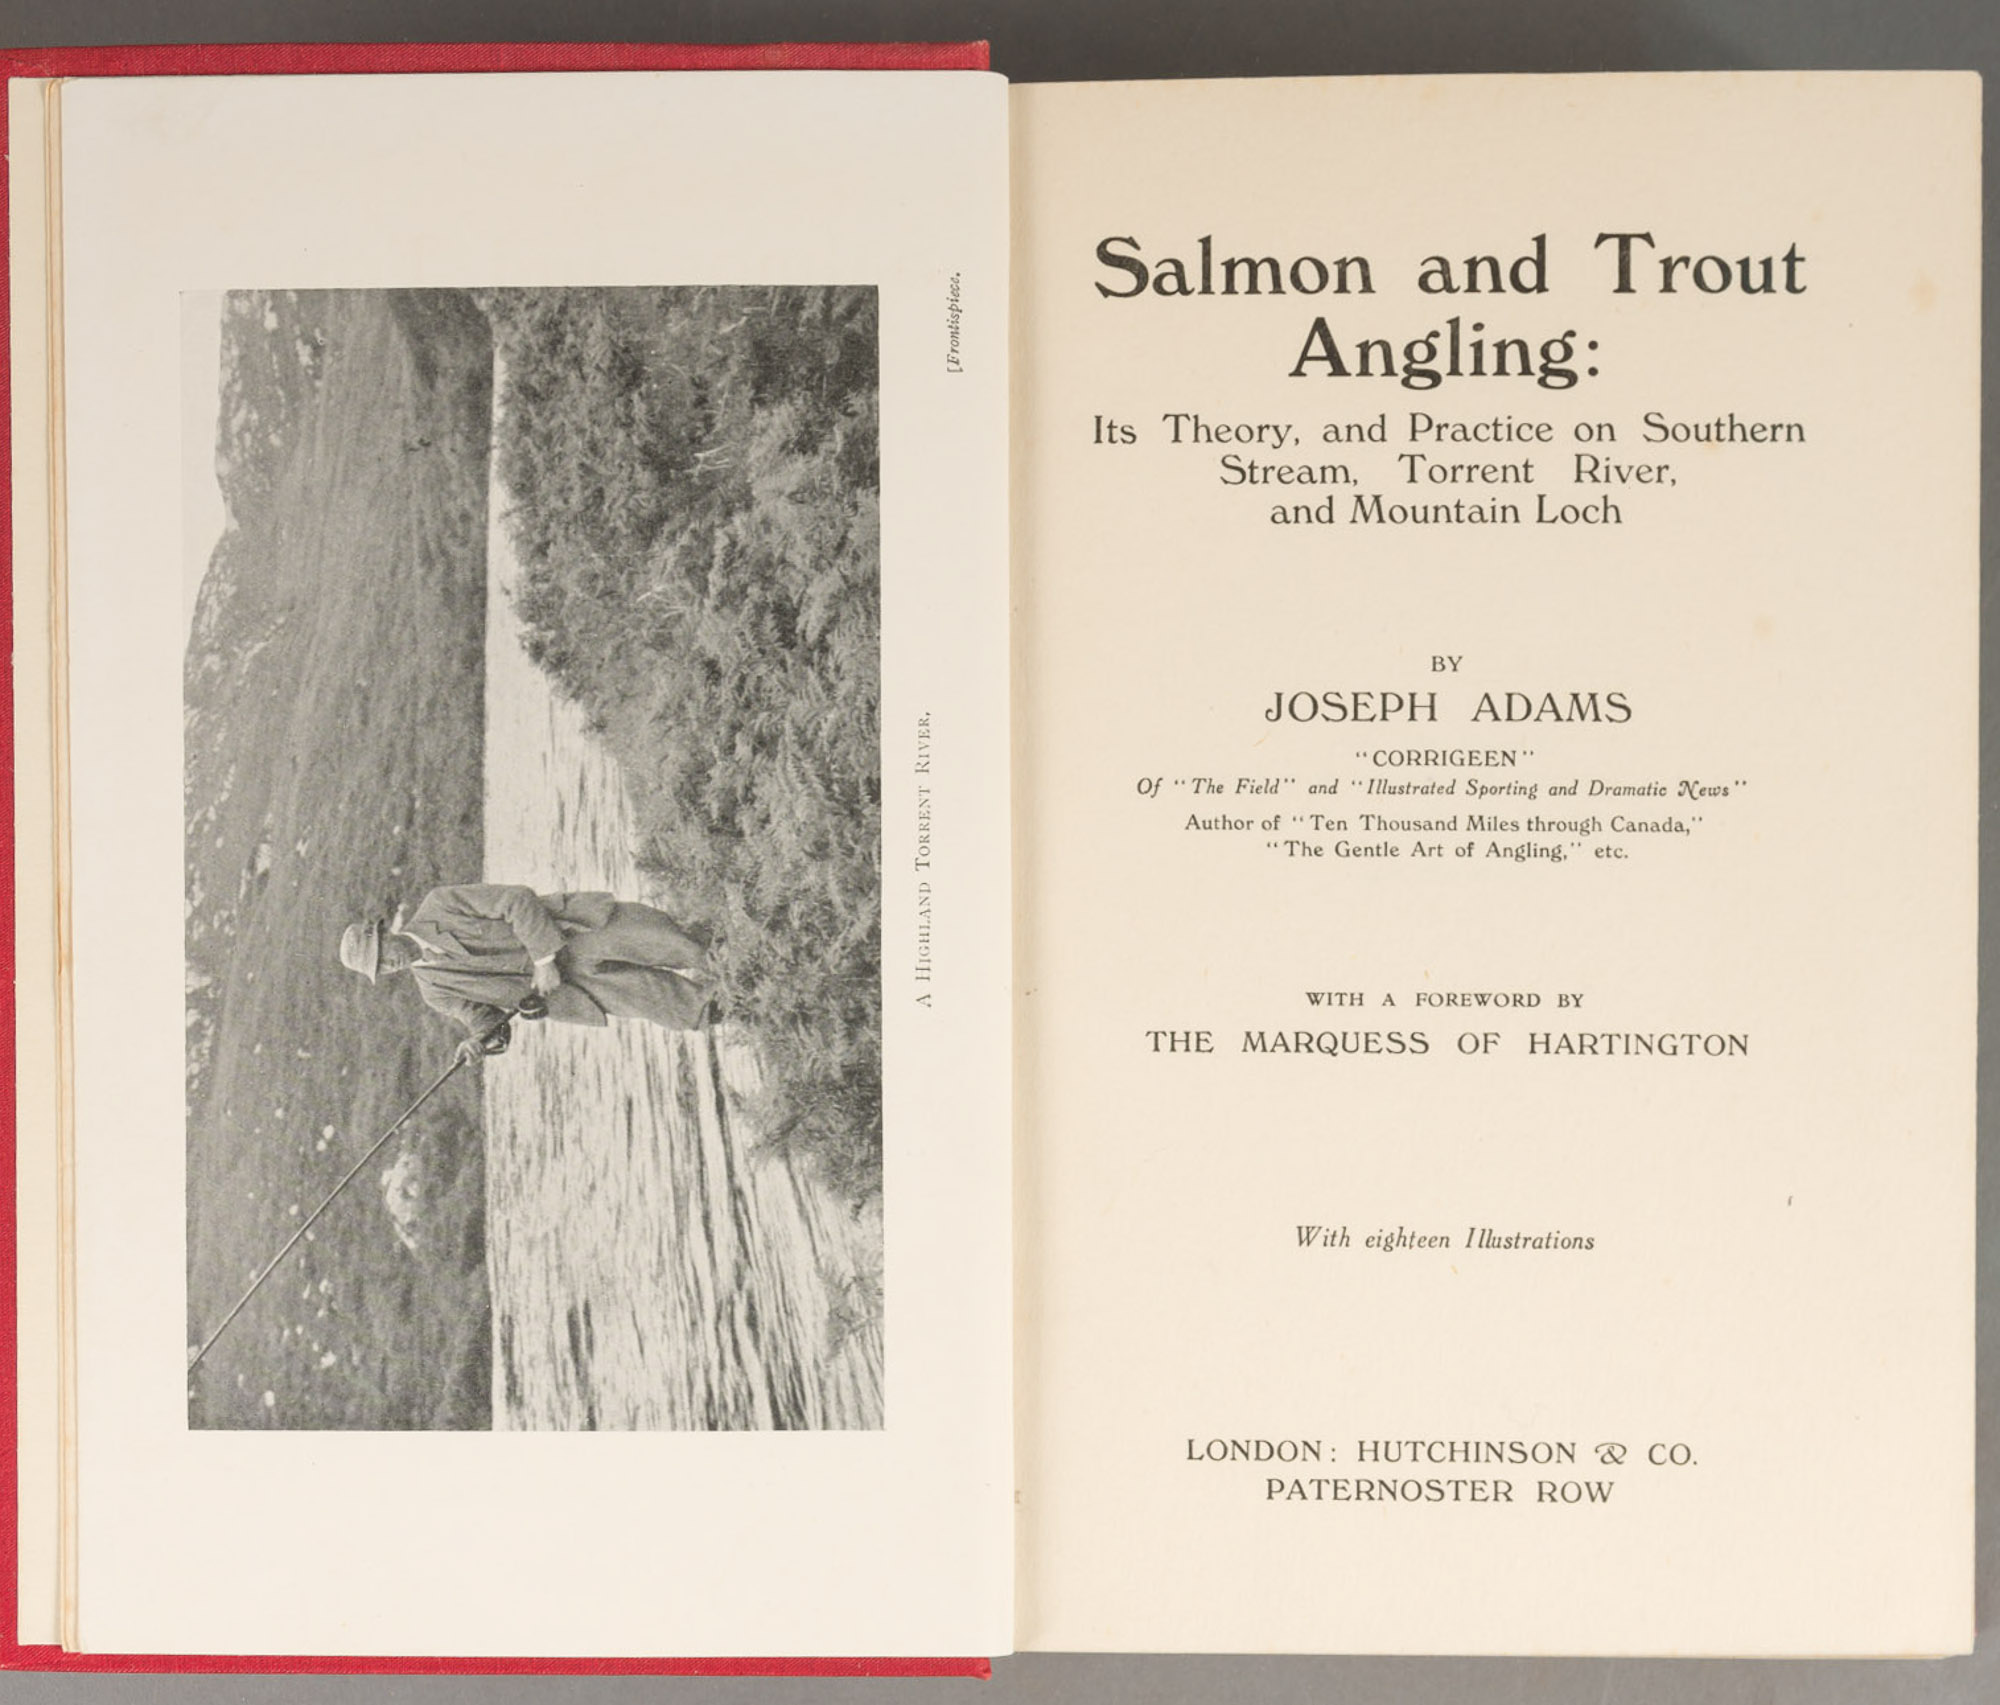 Lot image - ADAMS, JOSEPH  Salmon and Trout Angling: Its Theory, and Practice on Southern Stream, Torrent River, and Mountain Loch.